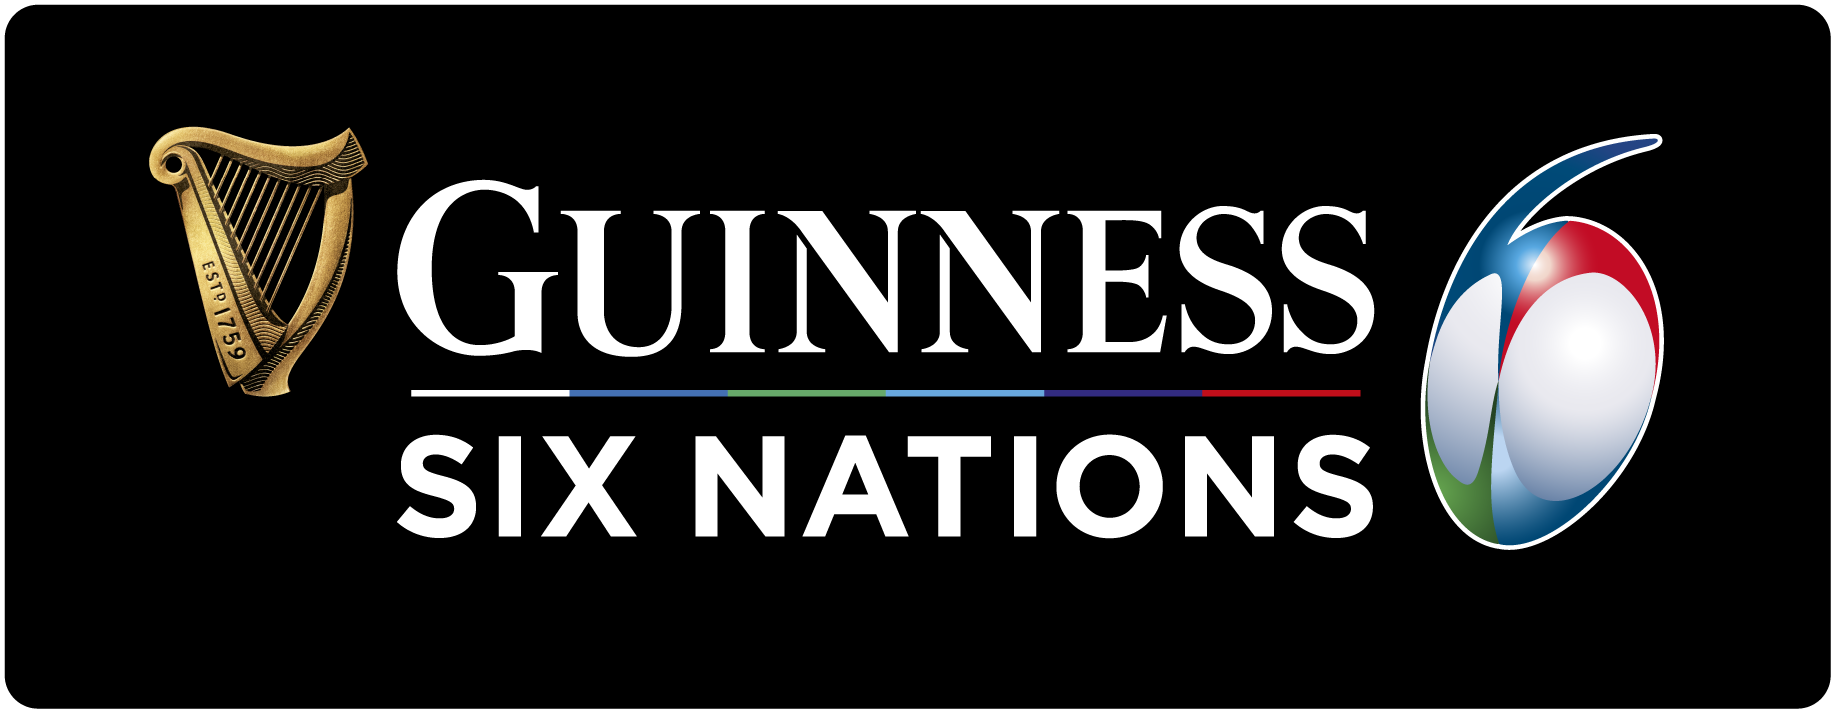 GUINNESS SIX NATIONS LANDSCAPE STACKED RGB